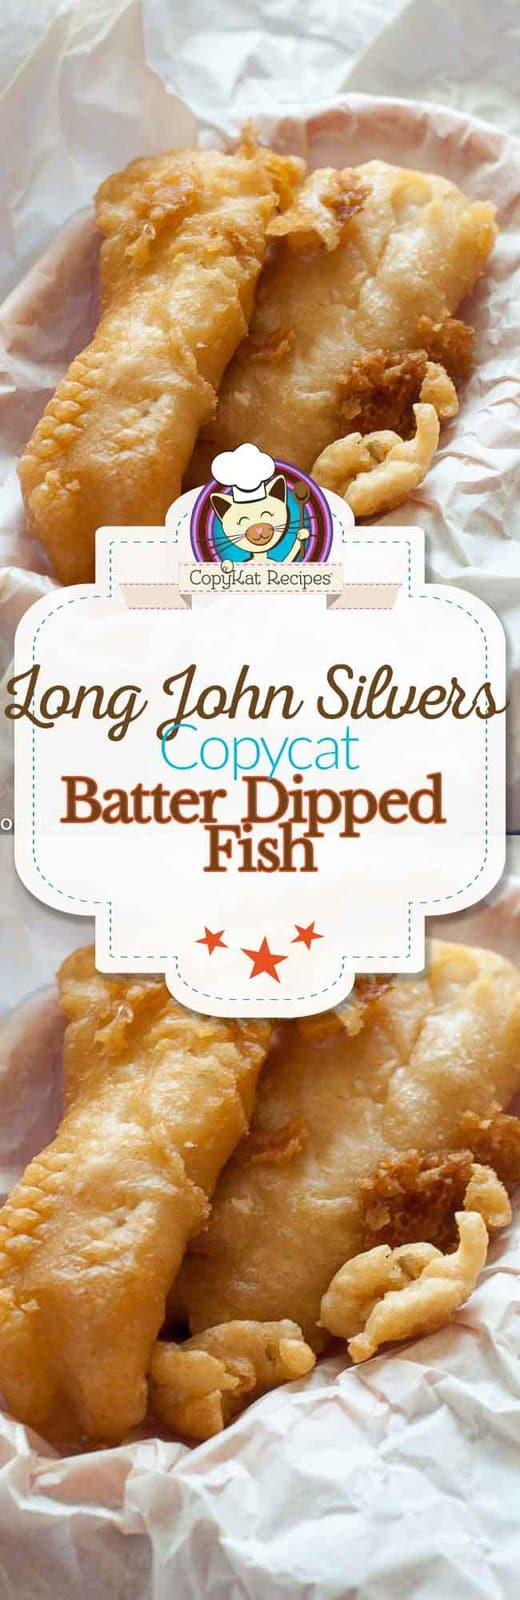 Make your own copycat version of Long John Silvers Crispy Batter Dipped Fish with this easy recipe.